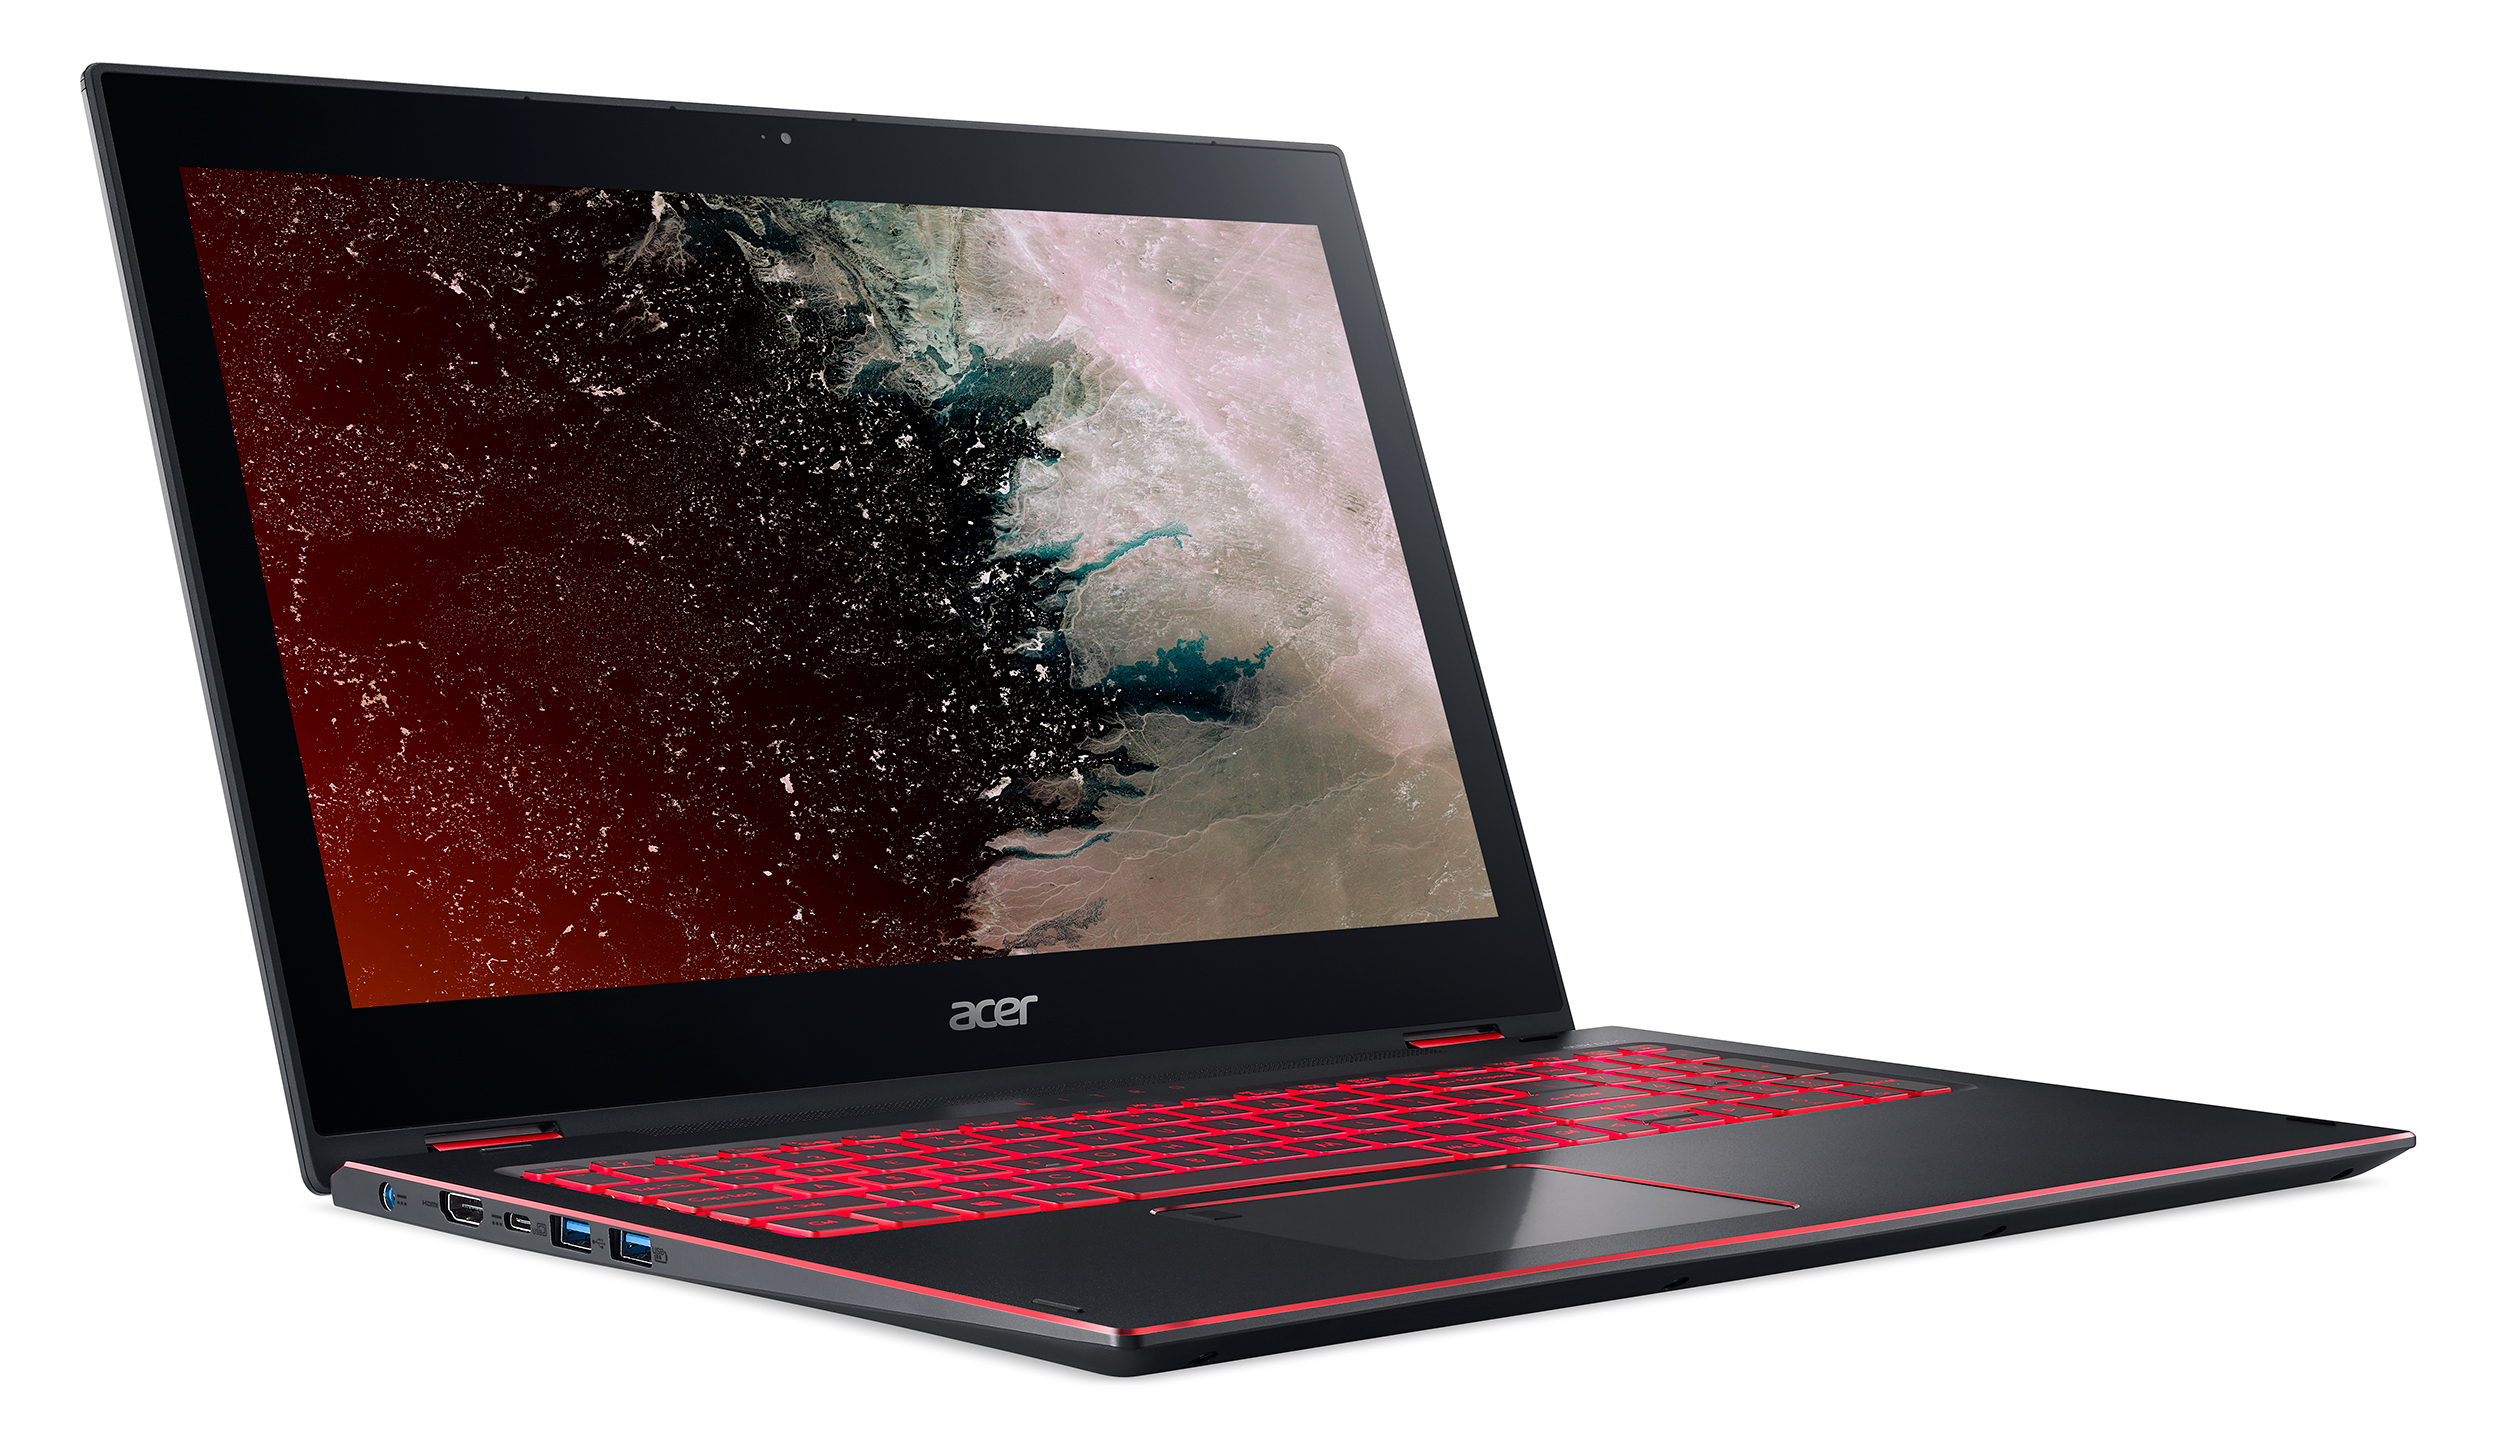 acer, intel, notebooks, nvidia, nitro 5 spin, convertible, 8th generation intel core, gaming, dota 2, league of legends, overwatch